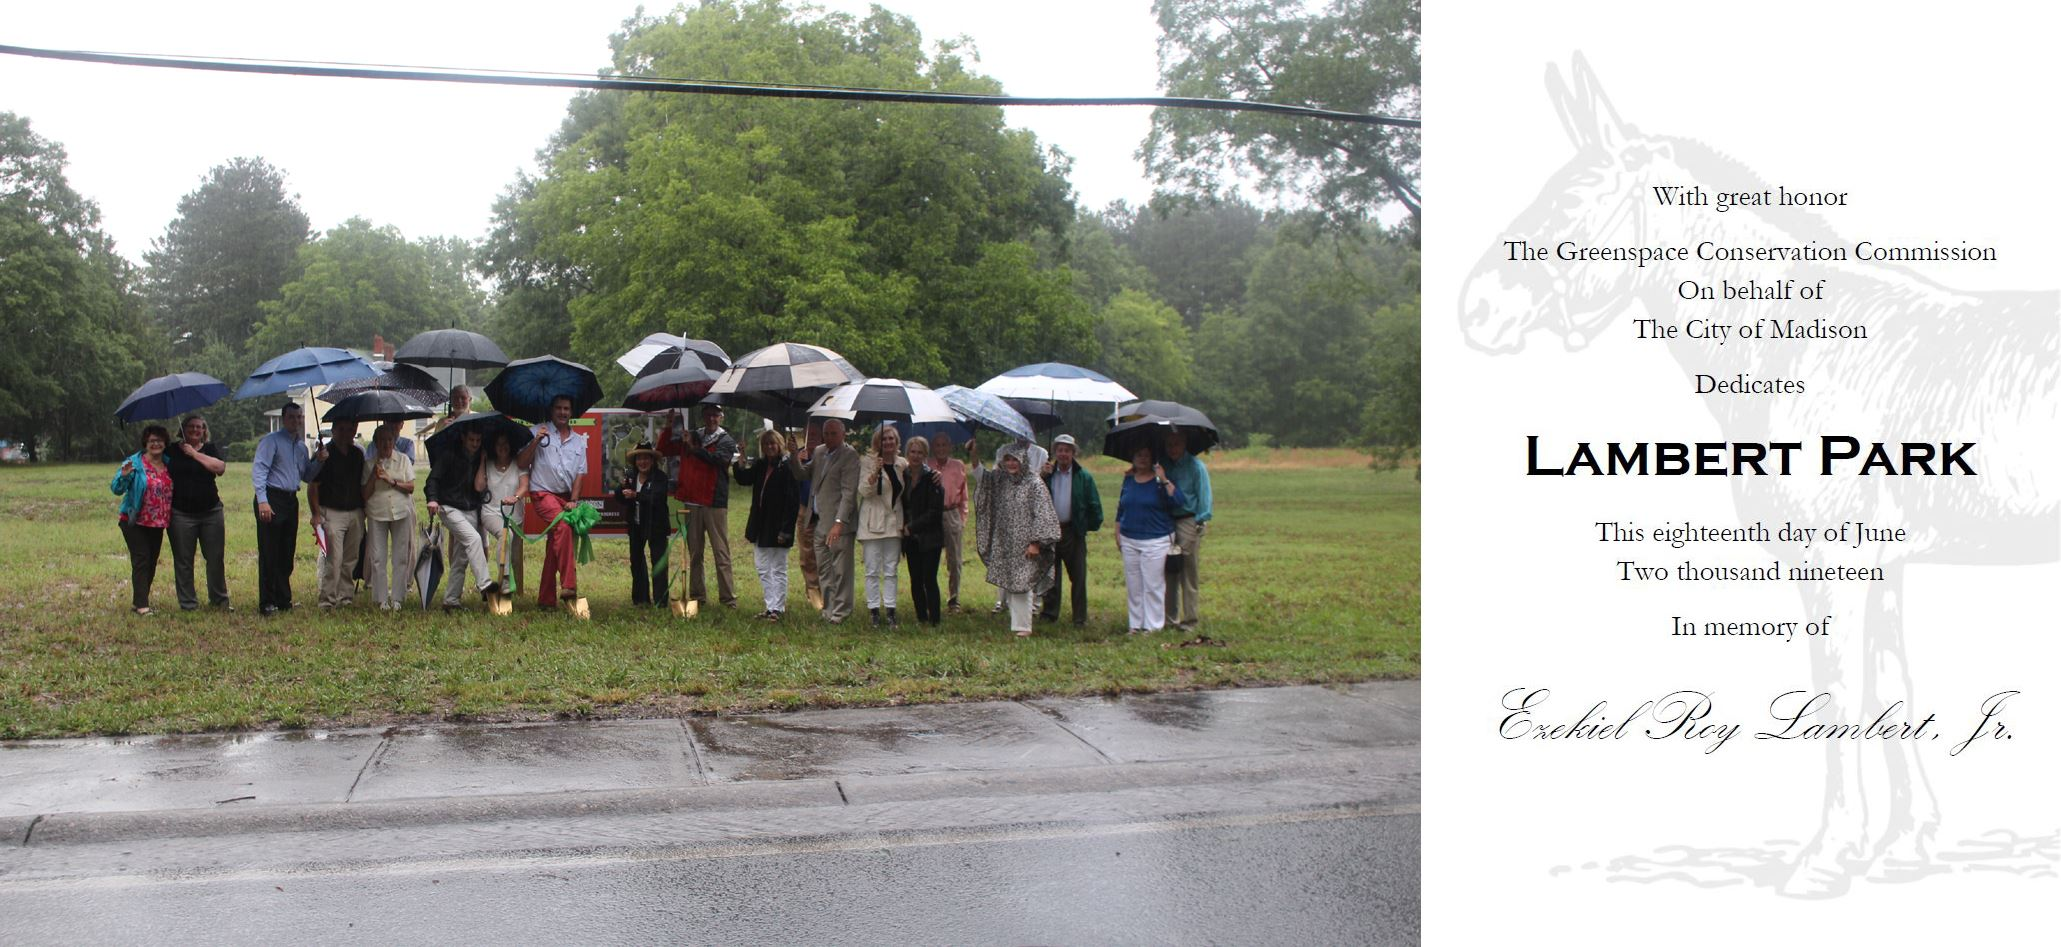 Crowd with umbrellas at Lambert Park Ground Breaking